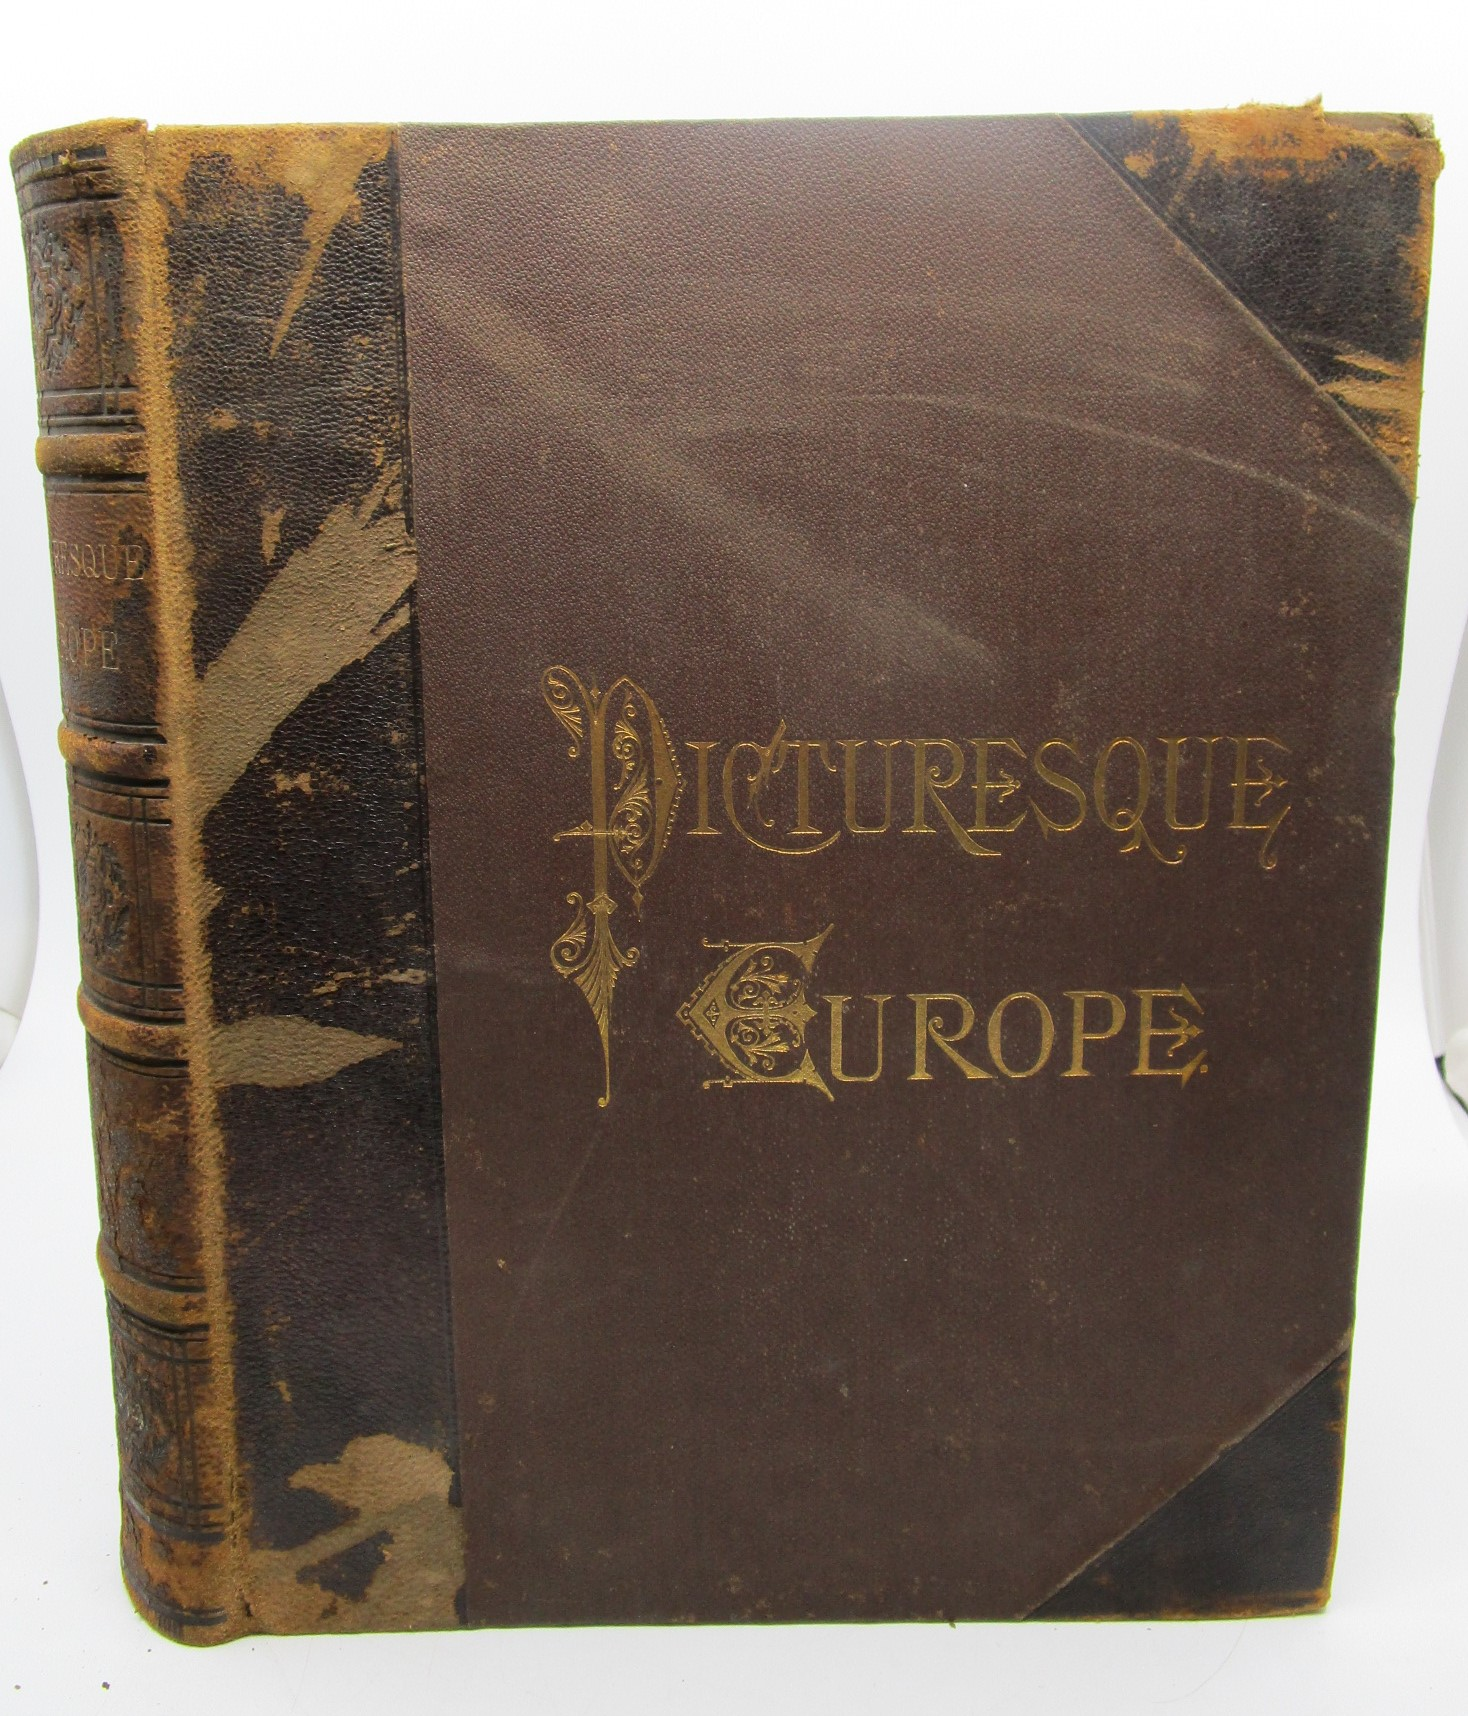 Image for Picturesque Europe: A Delineation by Pen and Pencil of the Natural Features and the Picturesque and Historical Places of Great Britain and the Continent (Volume 1)